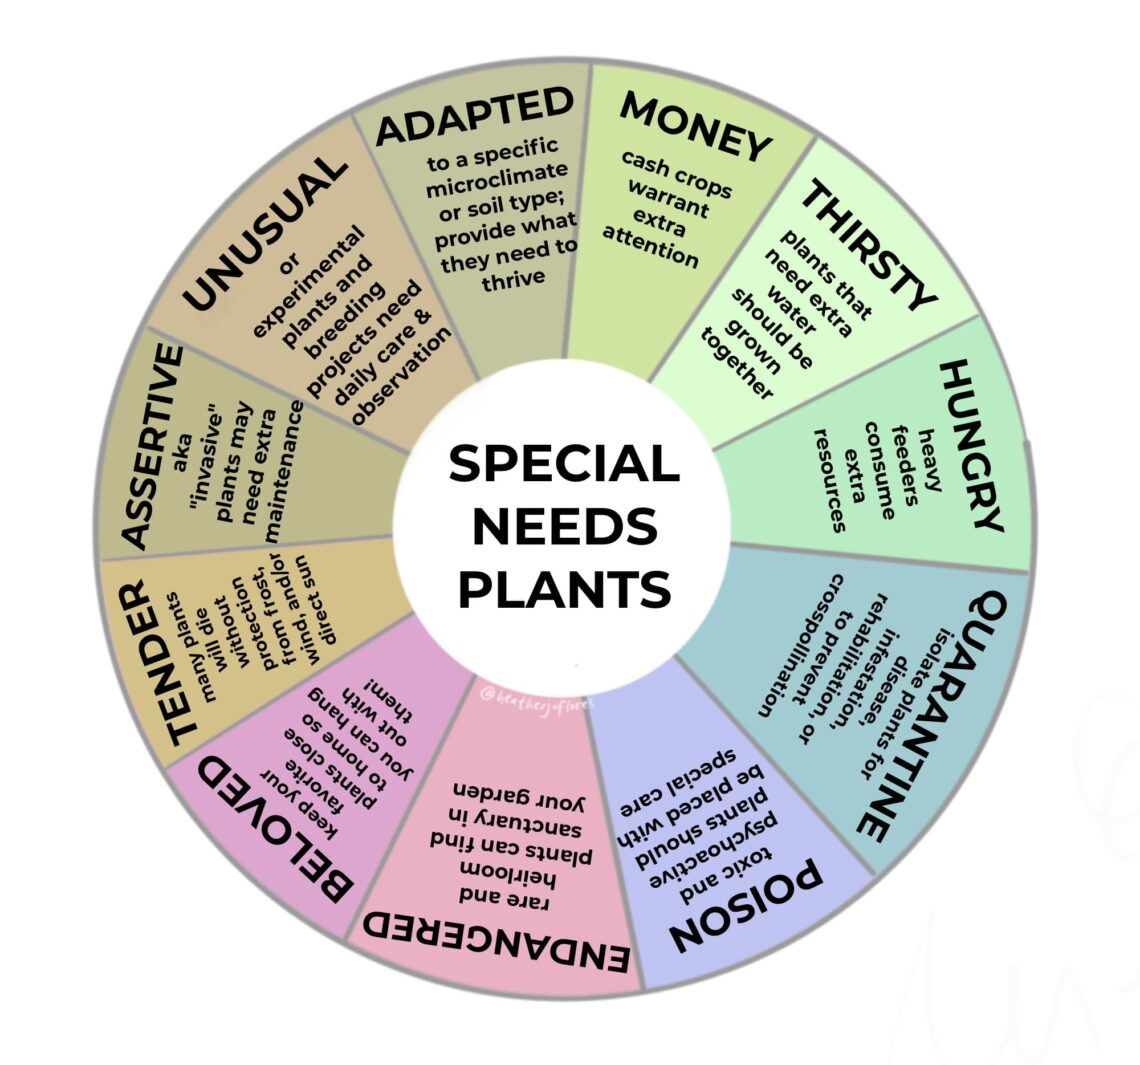 special_needs_plants infographic by Heather Jo Flores